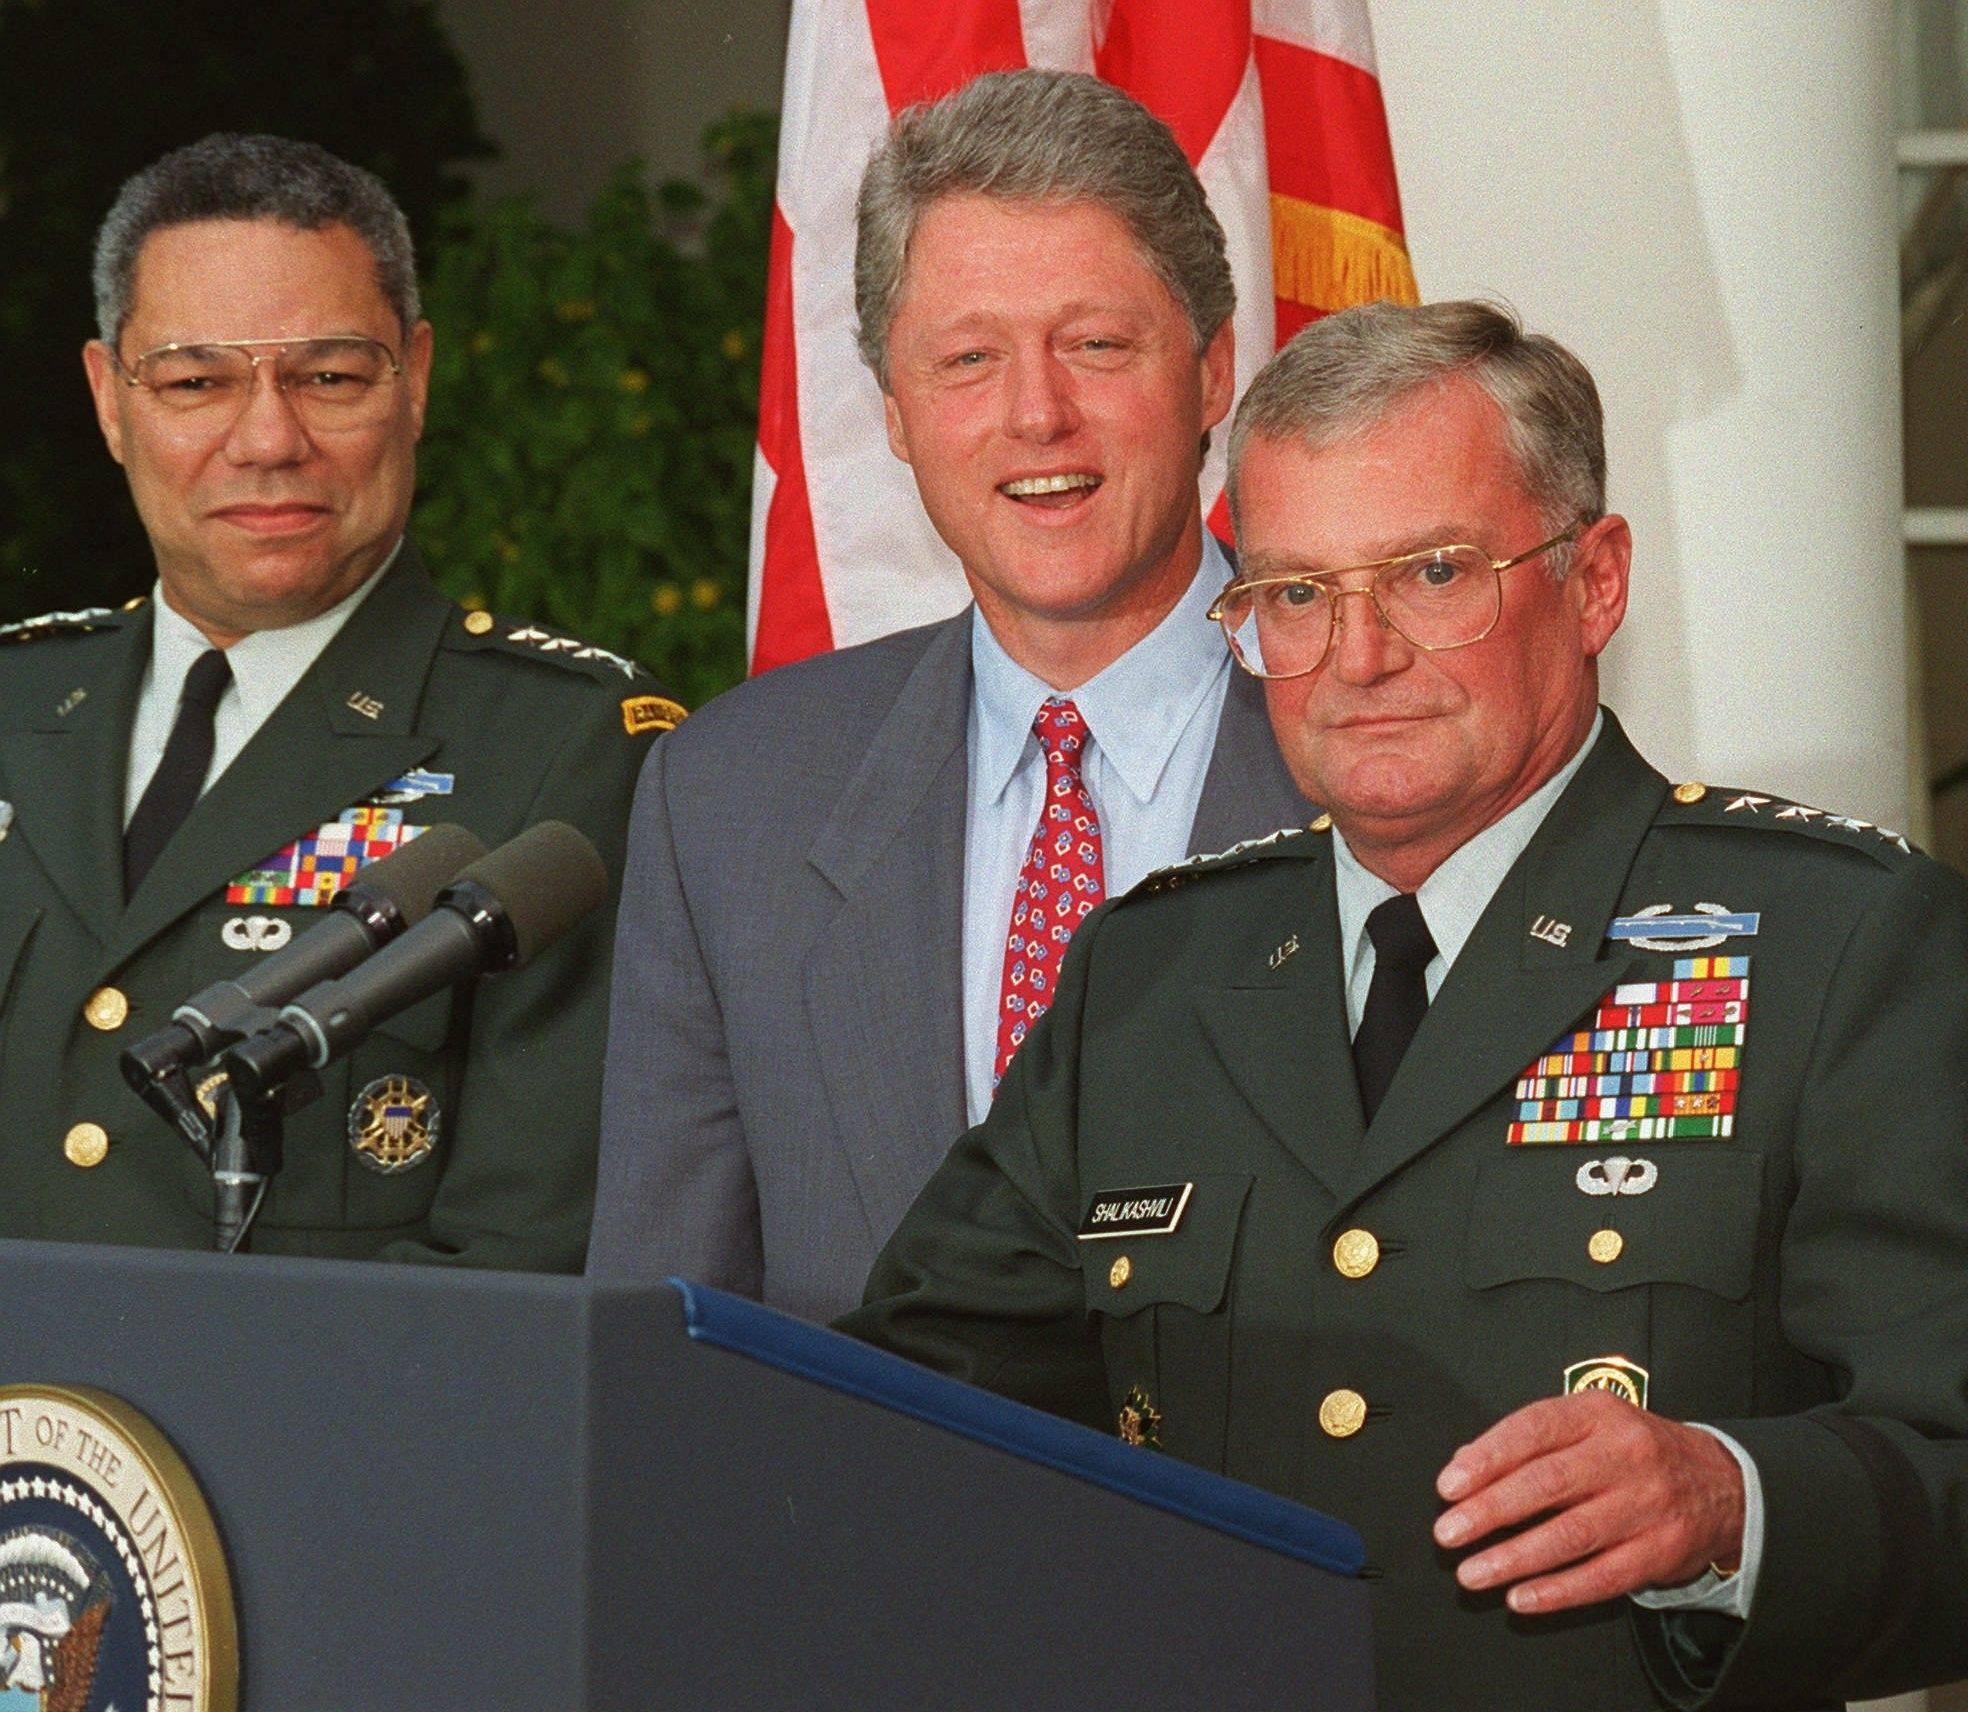 In this Aug. 11, 1993 file photo, Army Gen. John Shalikashvili speaks in the Rose Garden of the White House in Washington accompanied by President Bill Clinton and Joint Chiefs Chairman Gen. Colin Powell. On Saturday, July 23, 2011, the White House said Retired Gen. Shalikashvili, former chairman of the Joint Chiefs of Staff, has died.